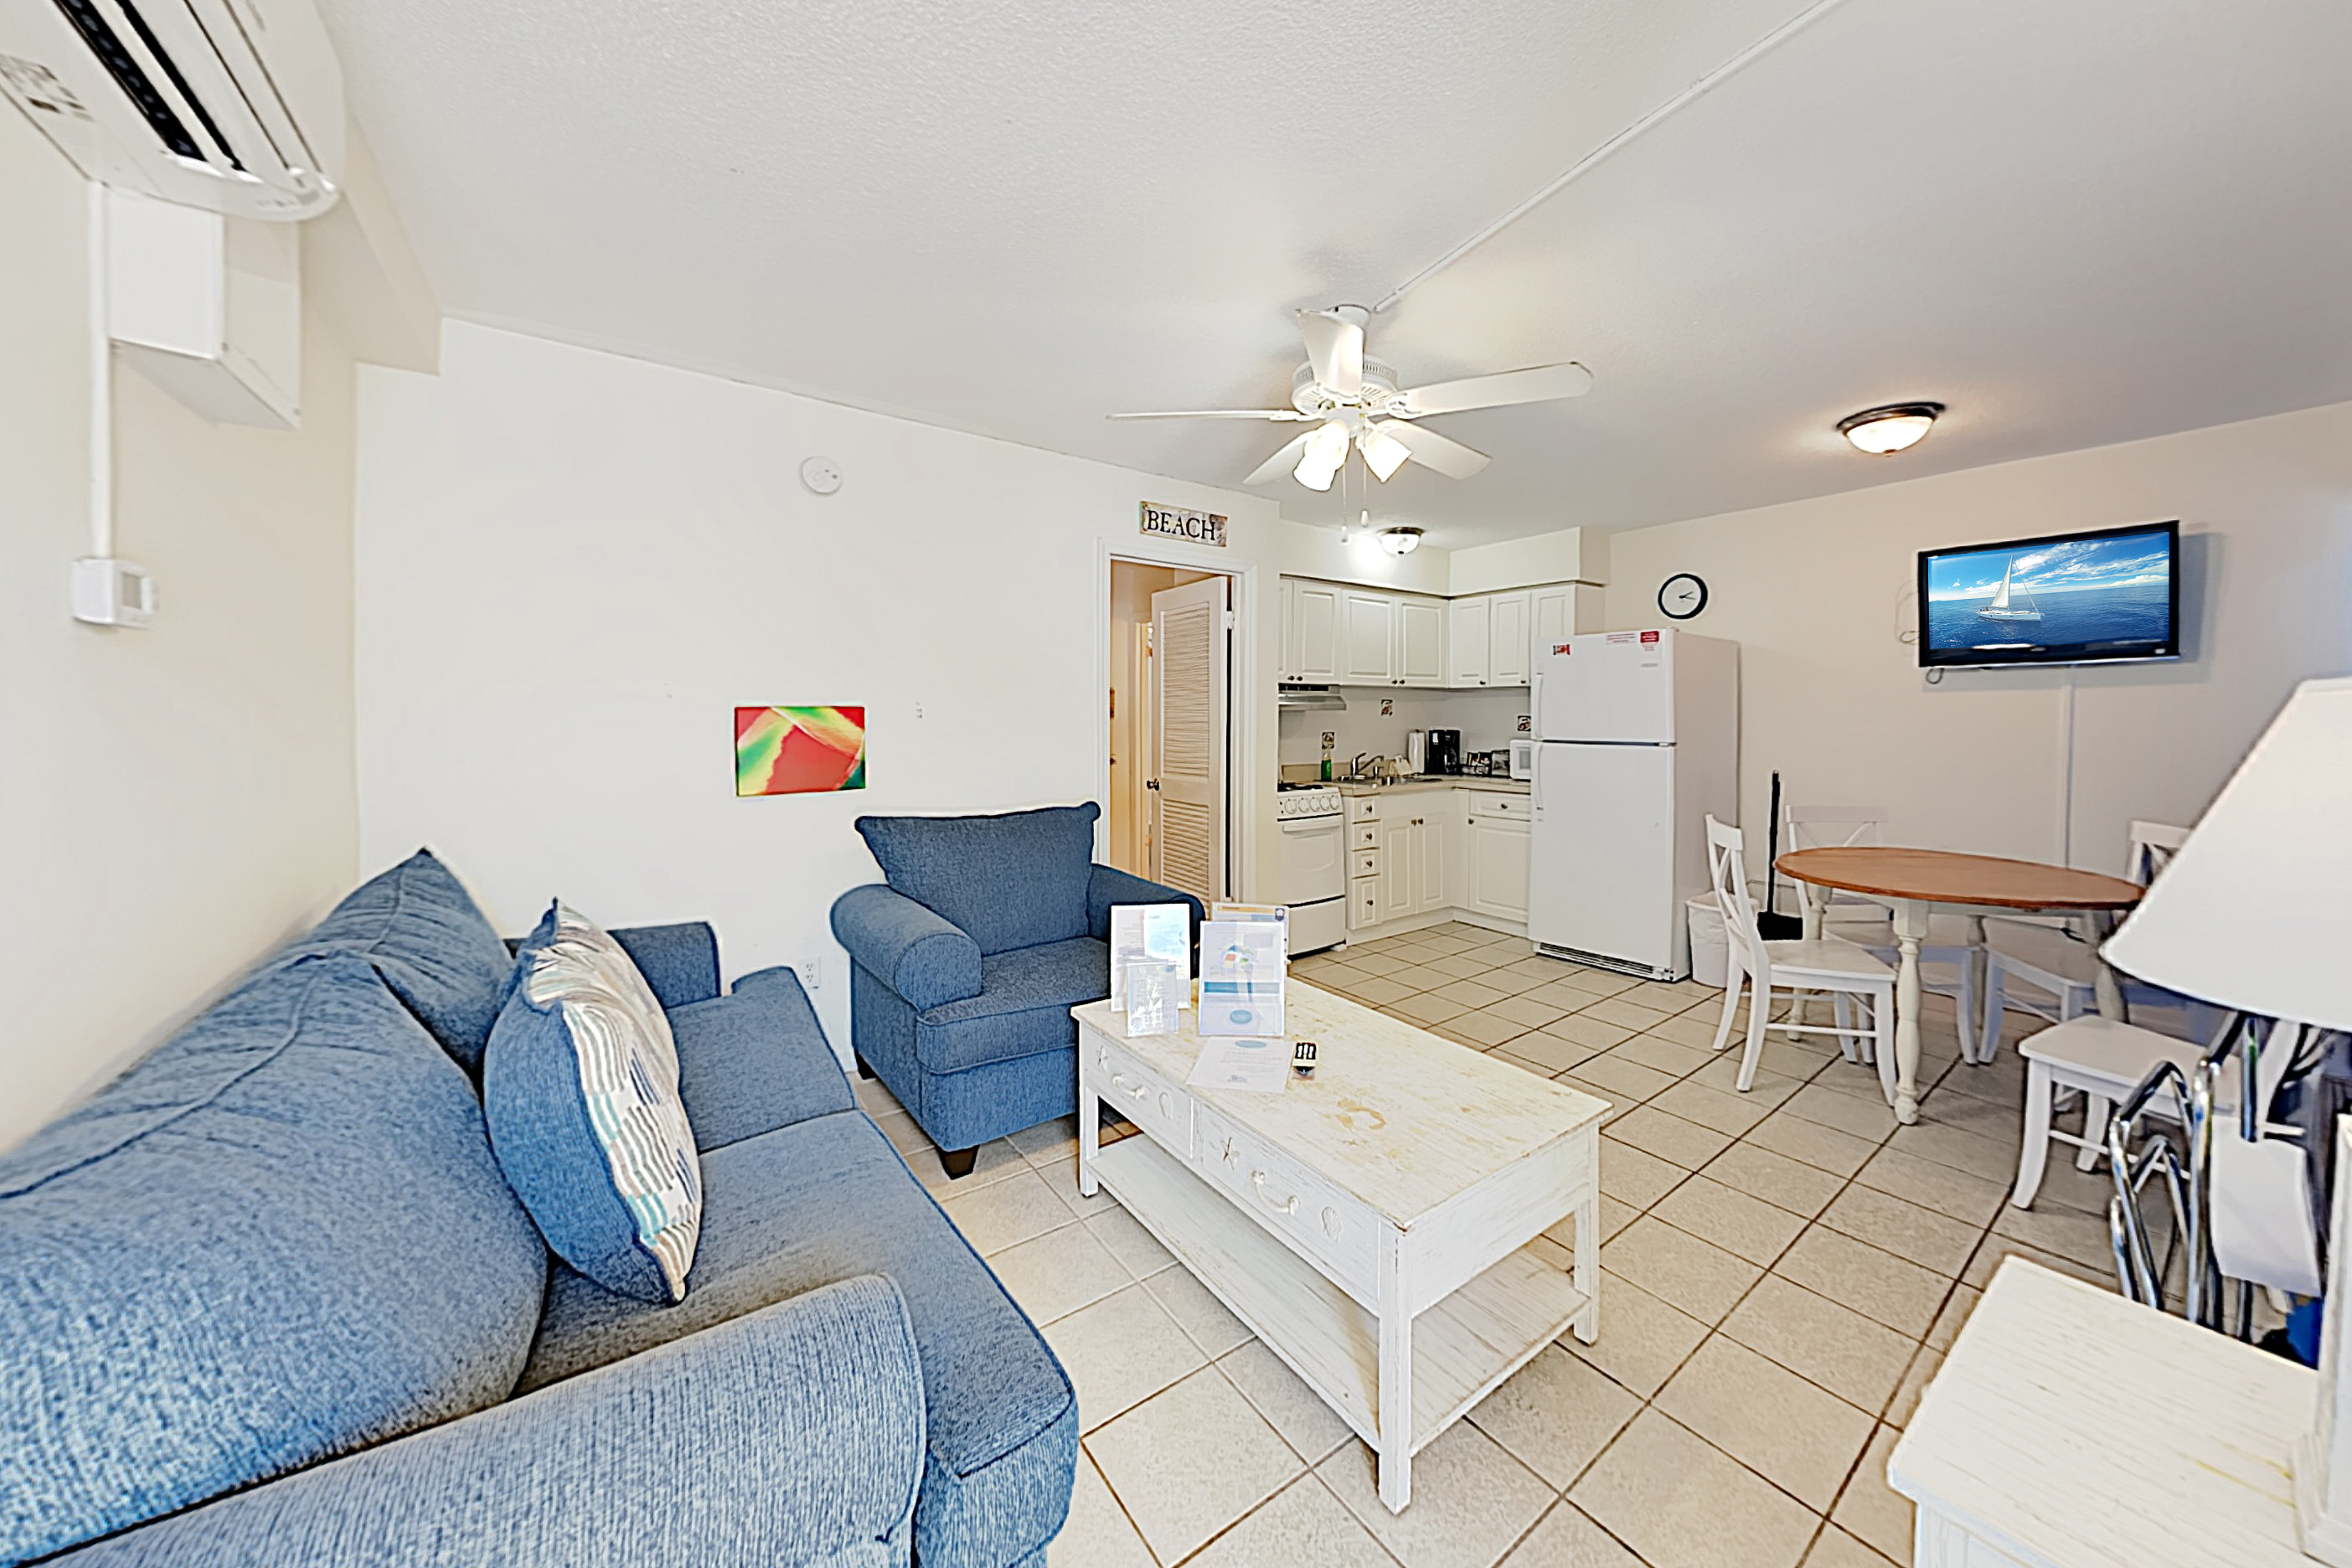 Sarasota FL Vacation Rental Welcome to Siesta